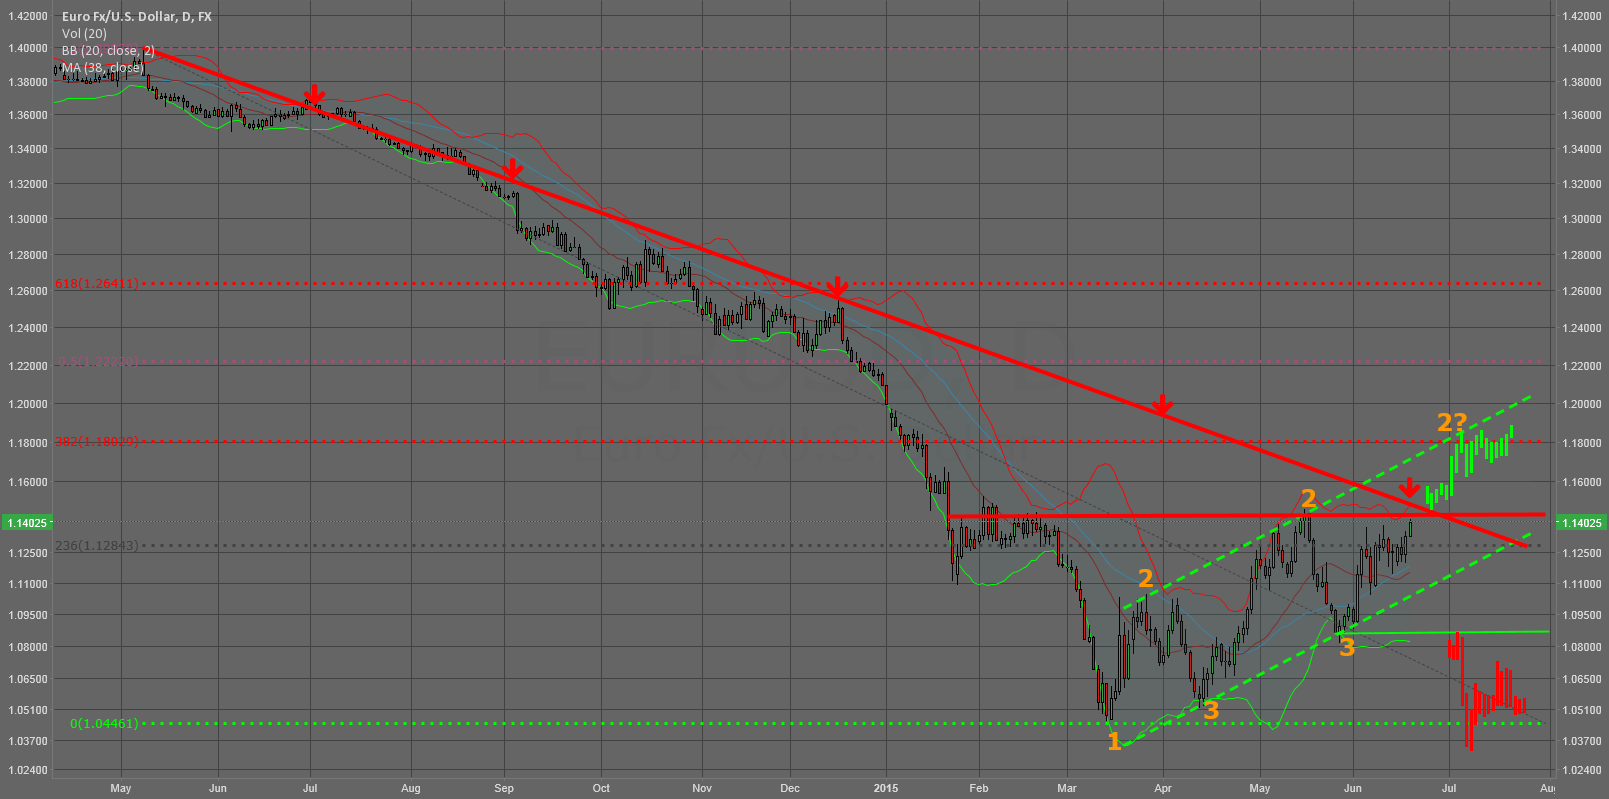 Will eurusd break the resistance @ 1,1445?